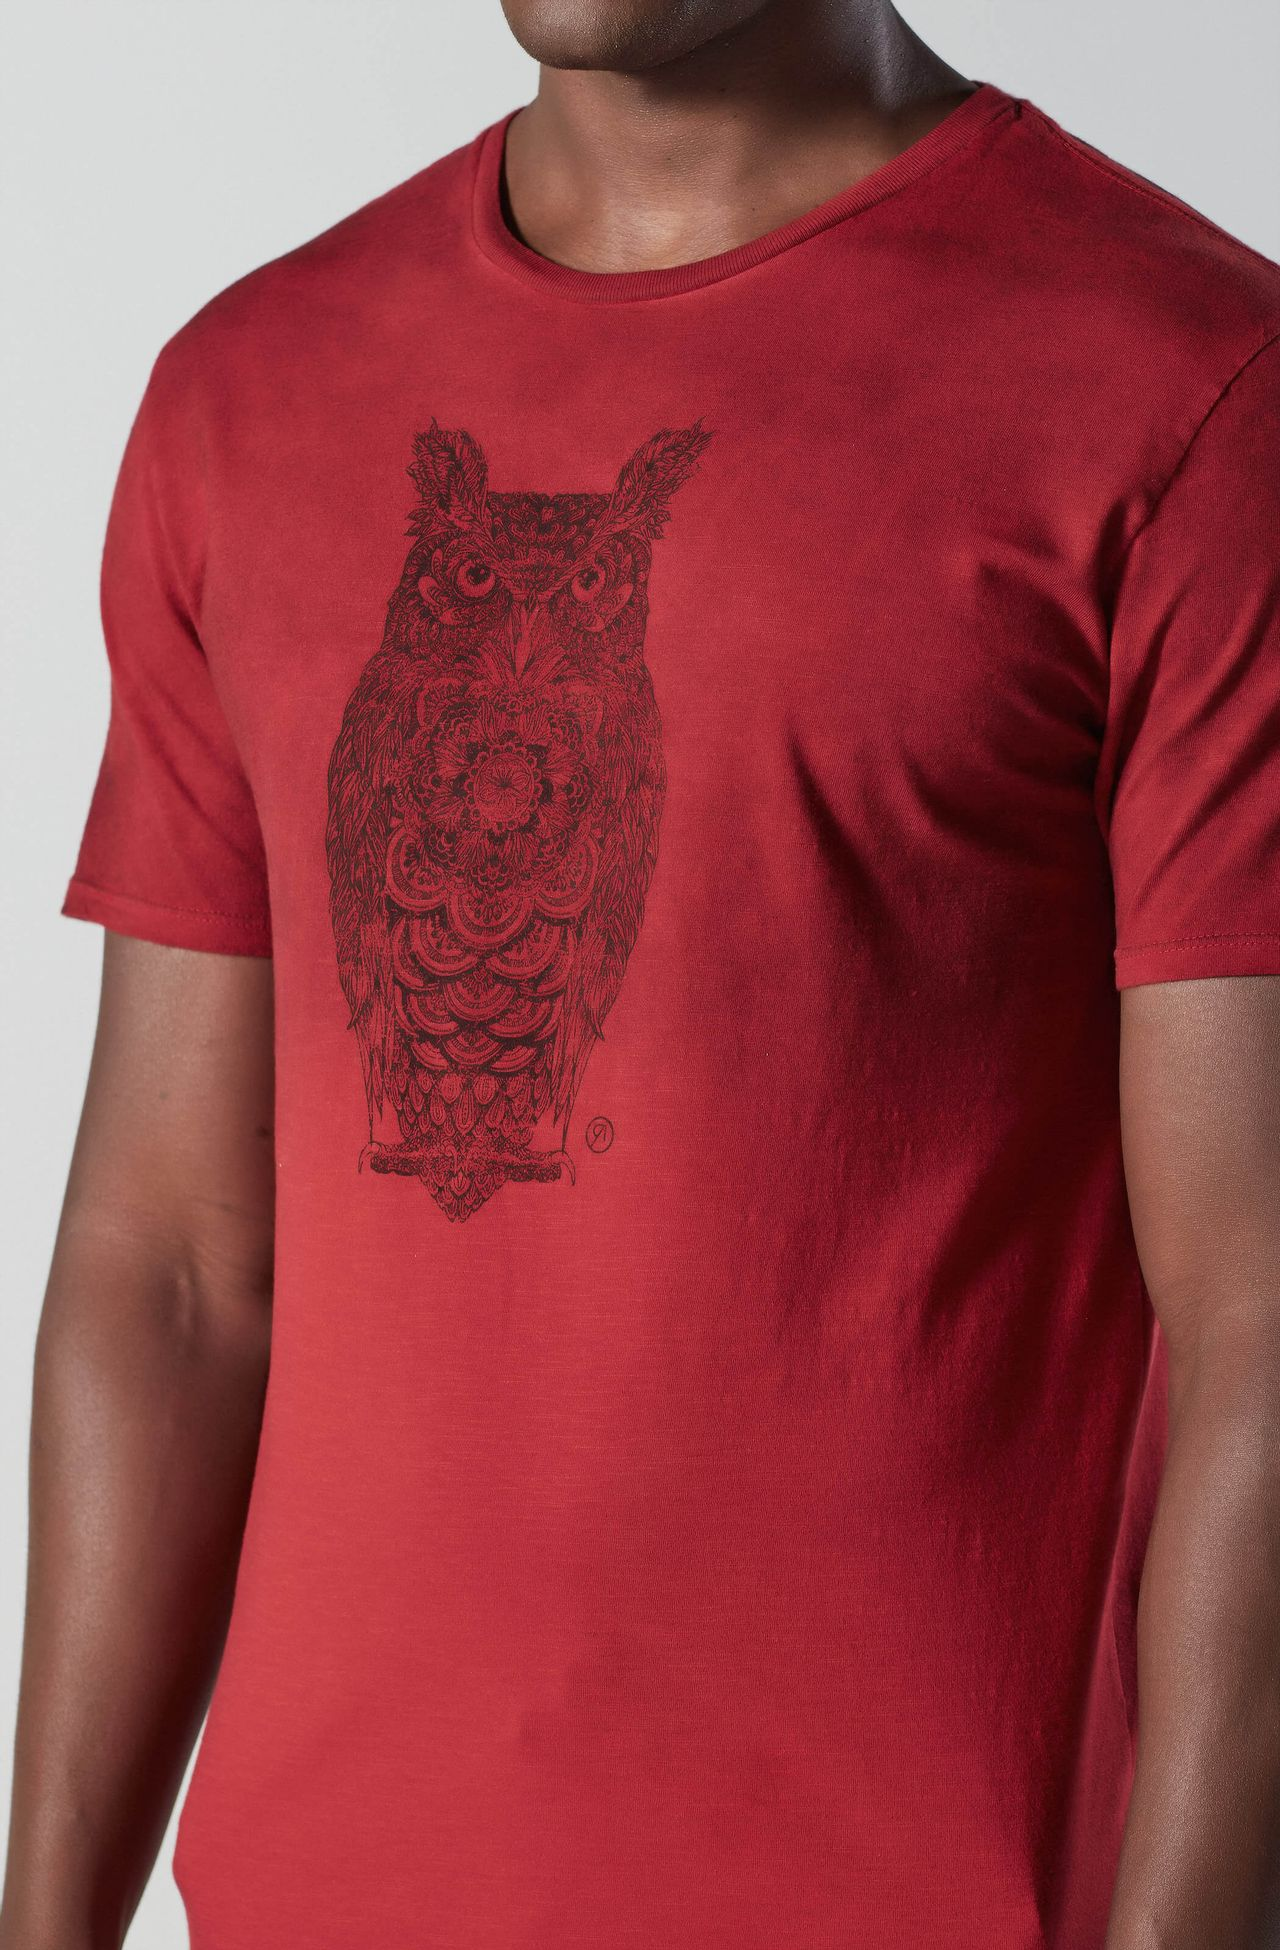 8353CCZ00018_370_3-TSHIRT-MC-SPRAY-OWL